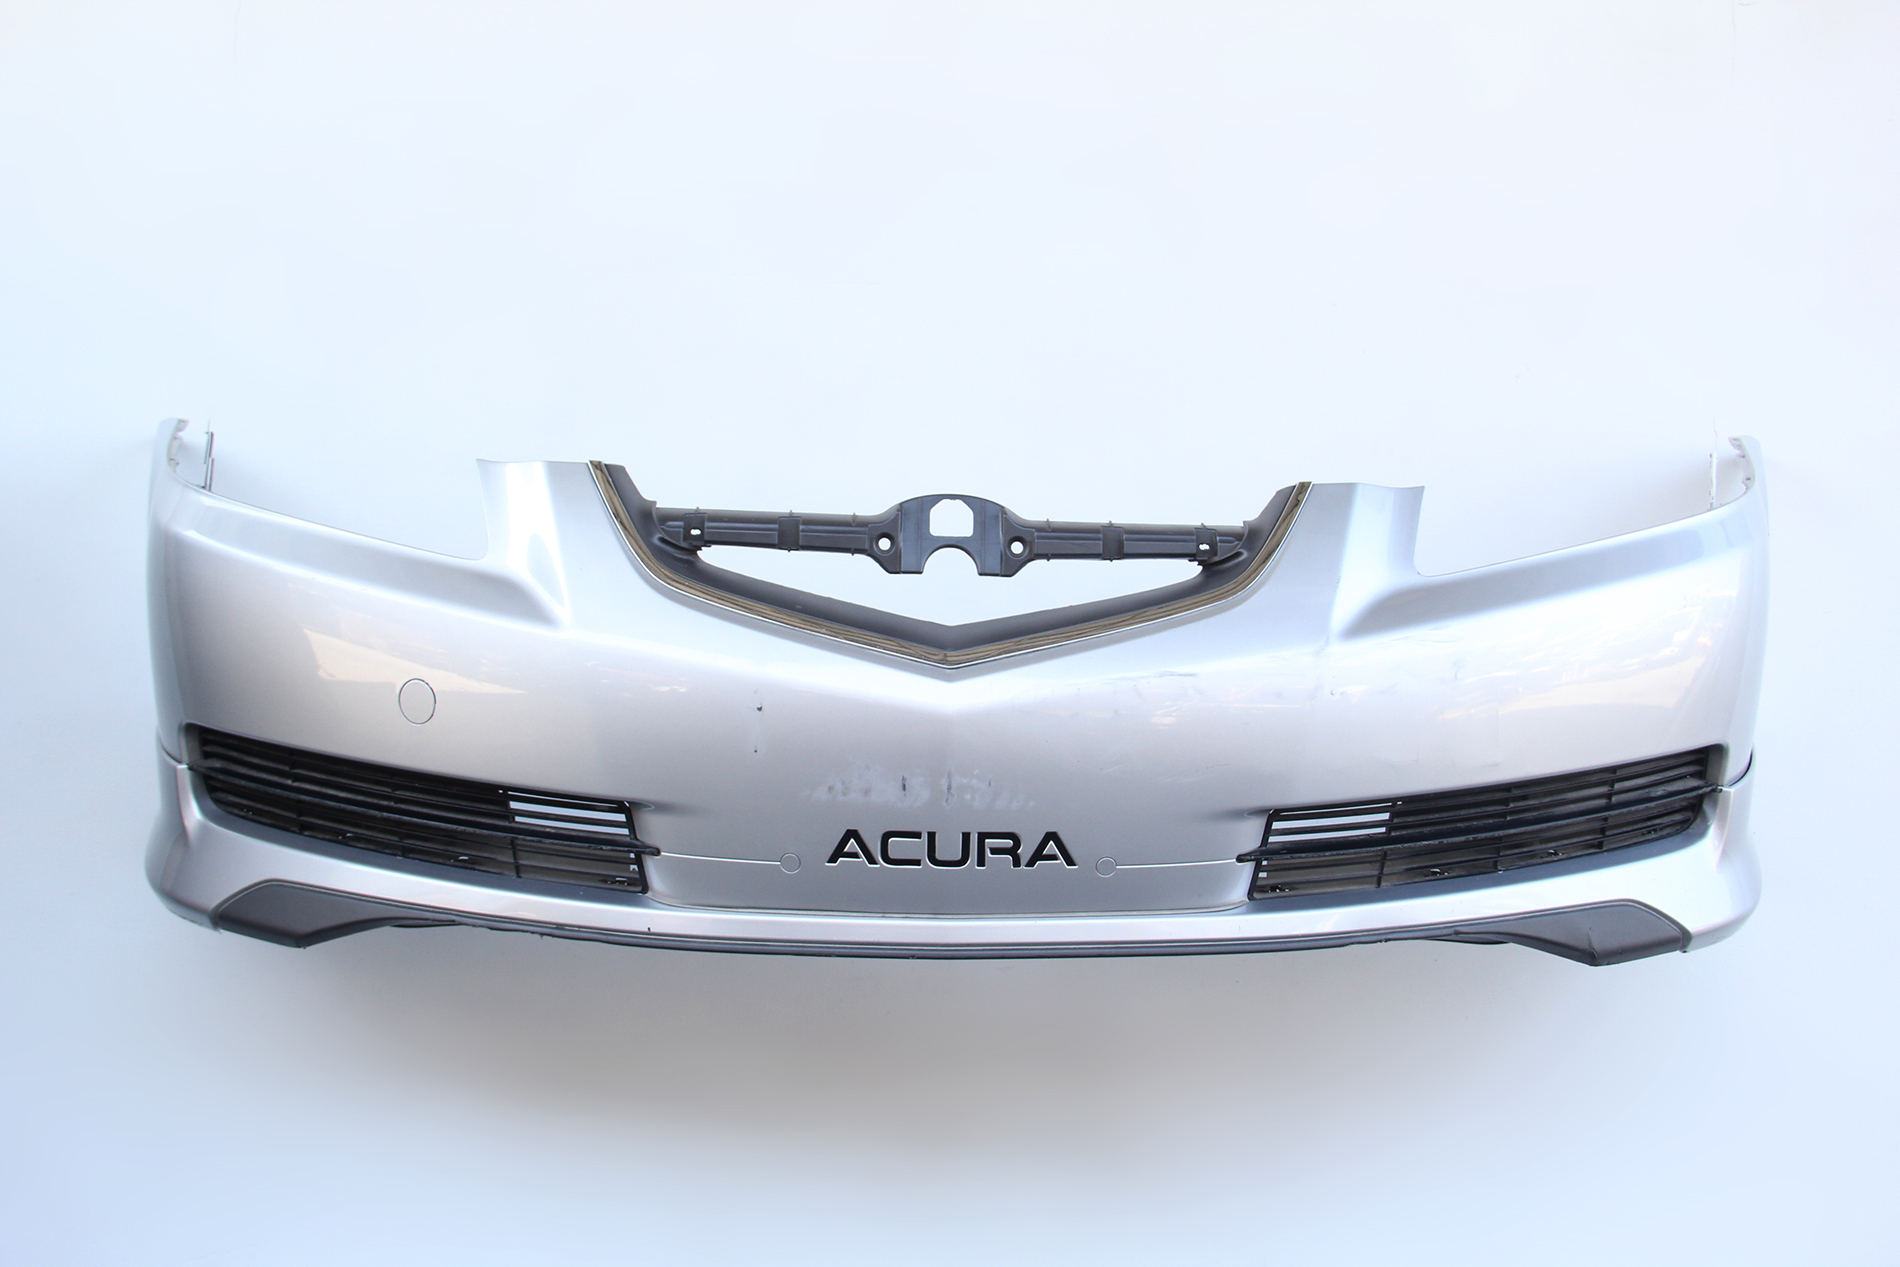 Acura Tl 04 05 06 Front Bumper Cover Silver W Spoiler A Spec 04711 Sep A90zz Oem Extreme Auto Parts